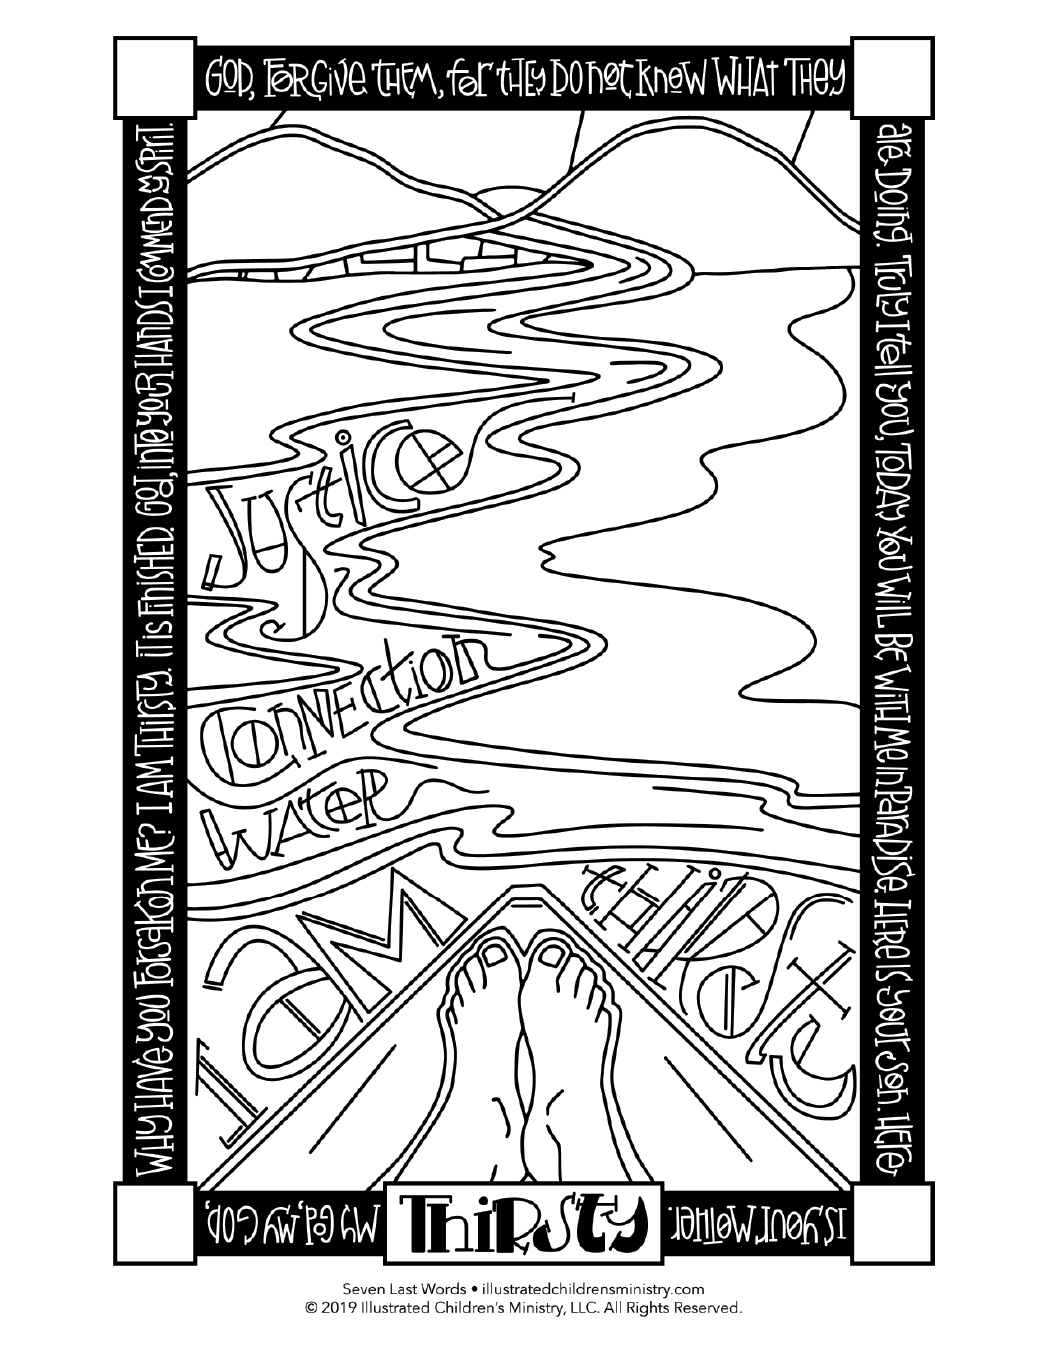 Seven Last Words coloring page simple - Thirsty